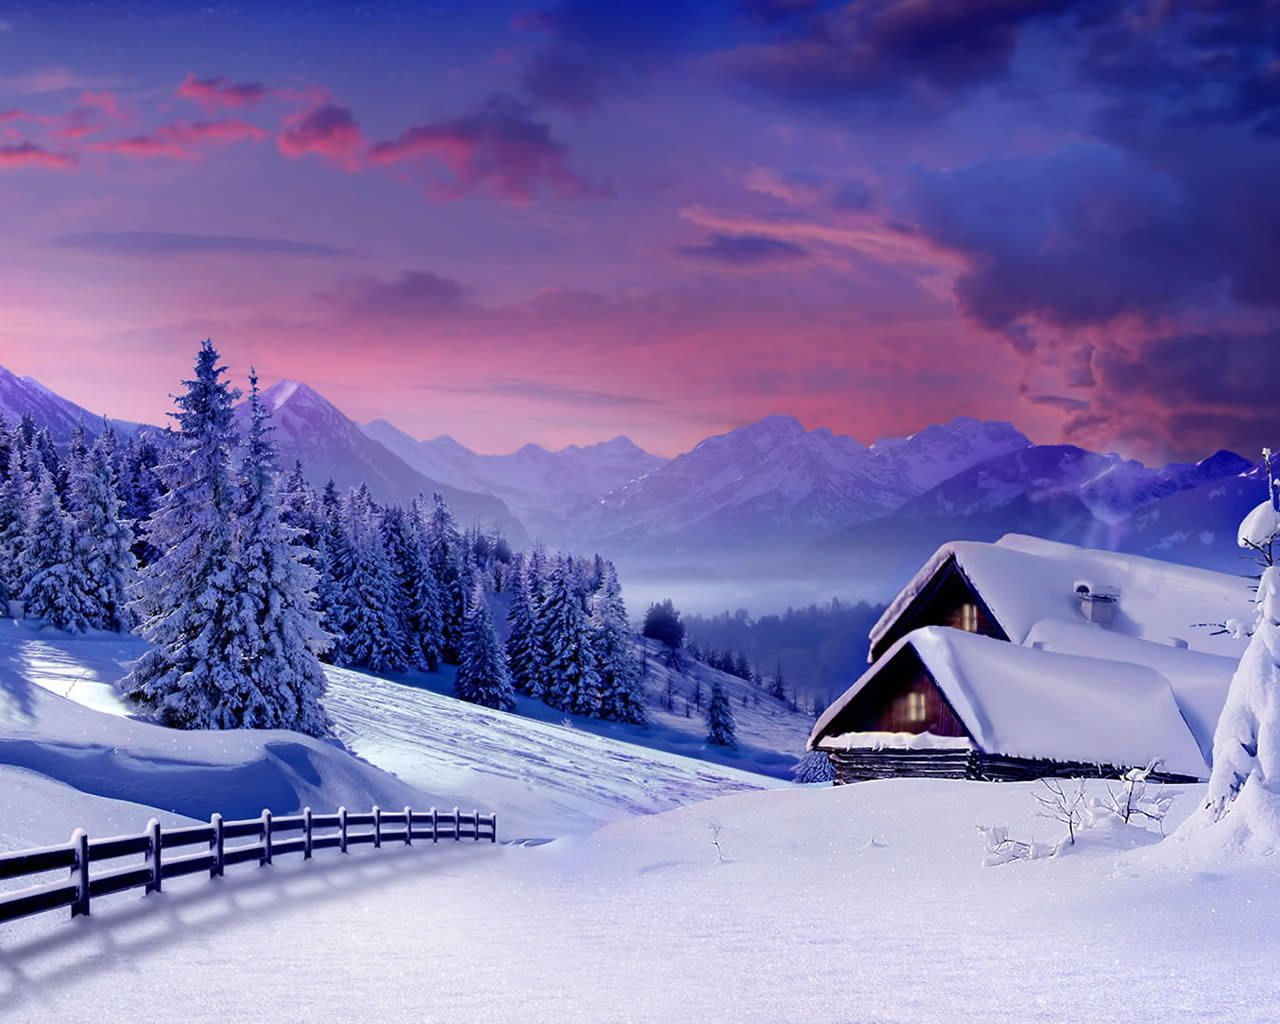 winter images | If this wallpaper resolution smaller then your screen resolution,